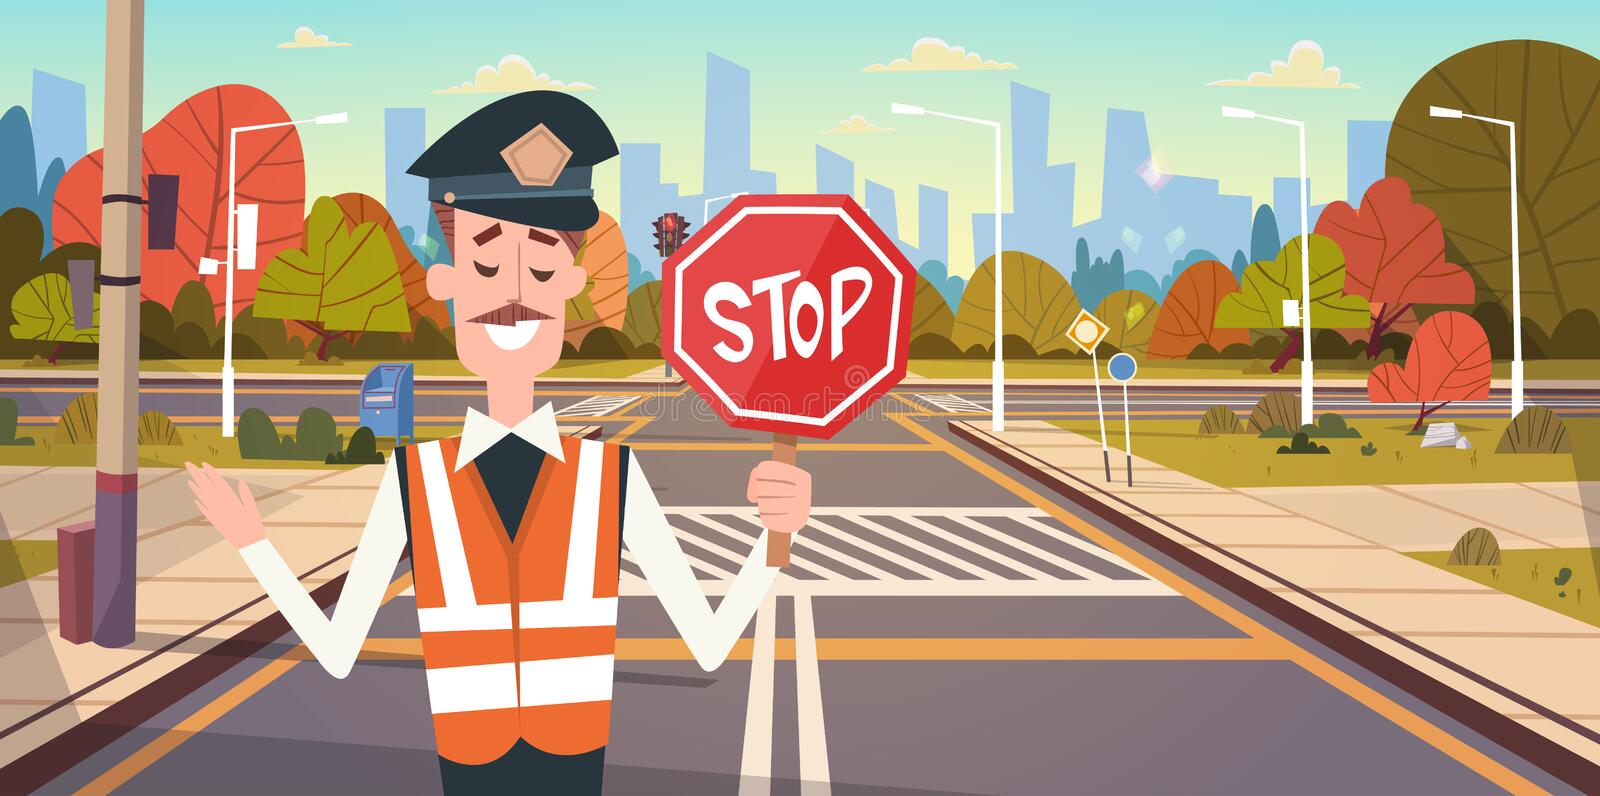 Guard With Stop Sign On Road With Crosswalk And Traffic Lights royalty free illustration